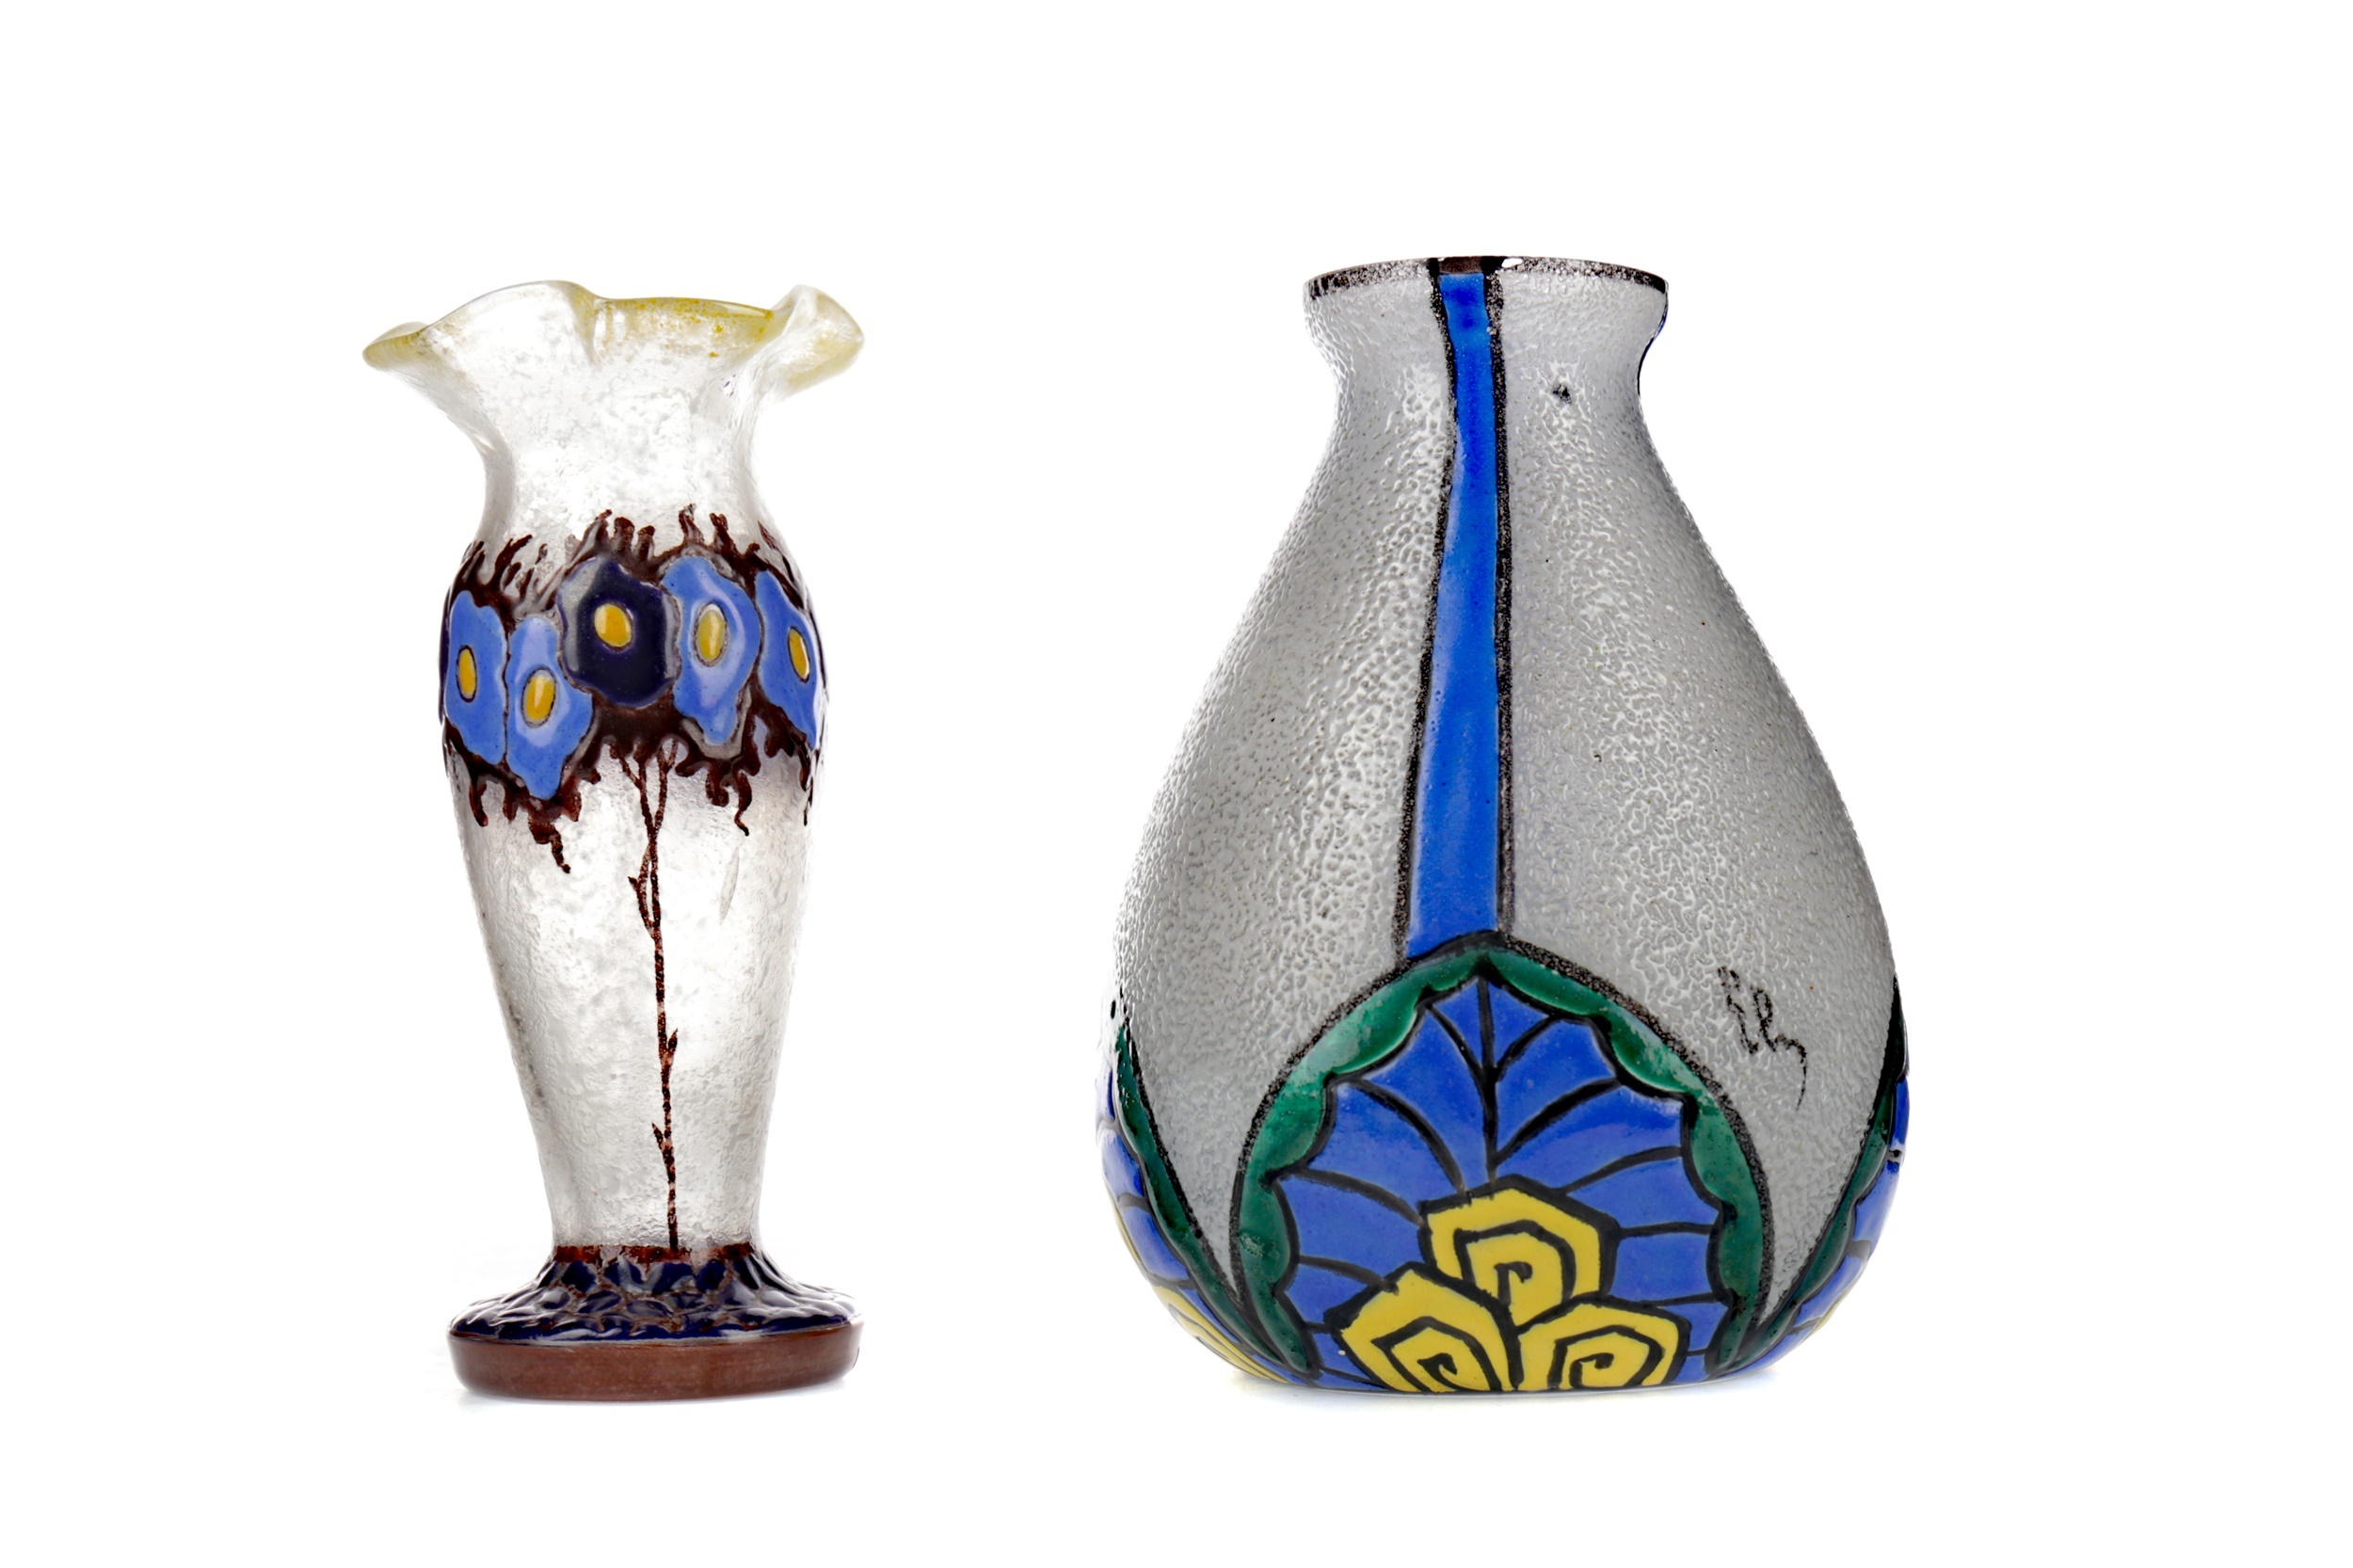 TWO EARLY 20TH CENTURY FRENCH FROSTED AND ENAMELLED GLASS VASES